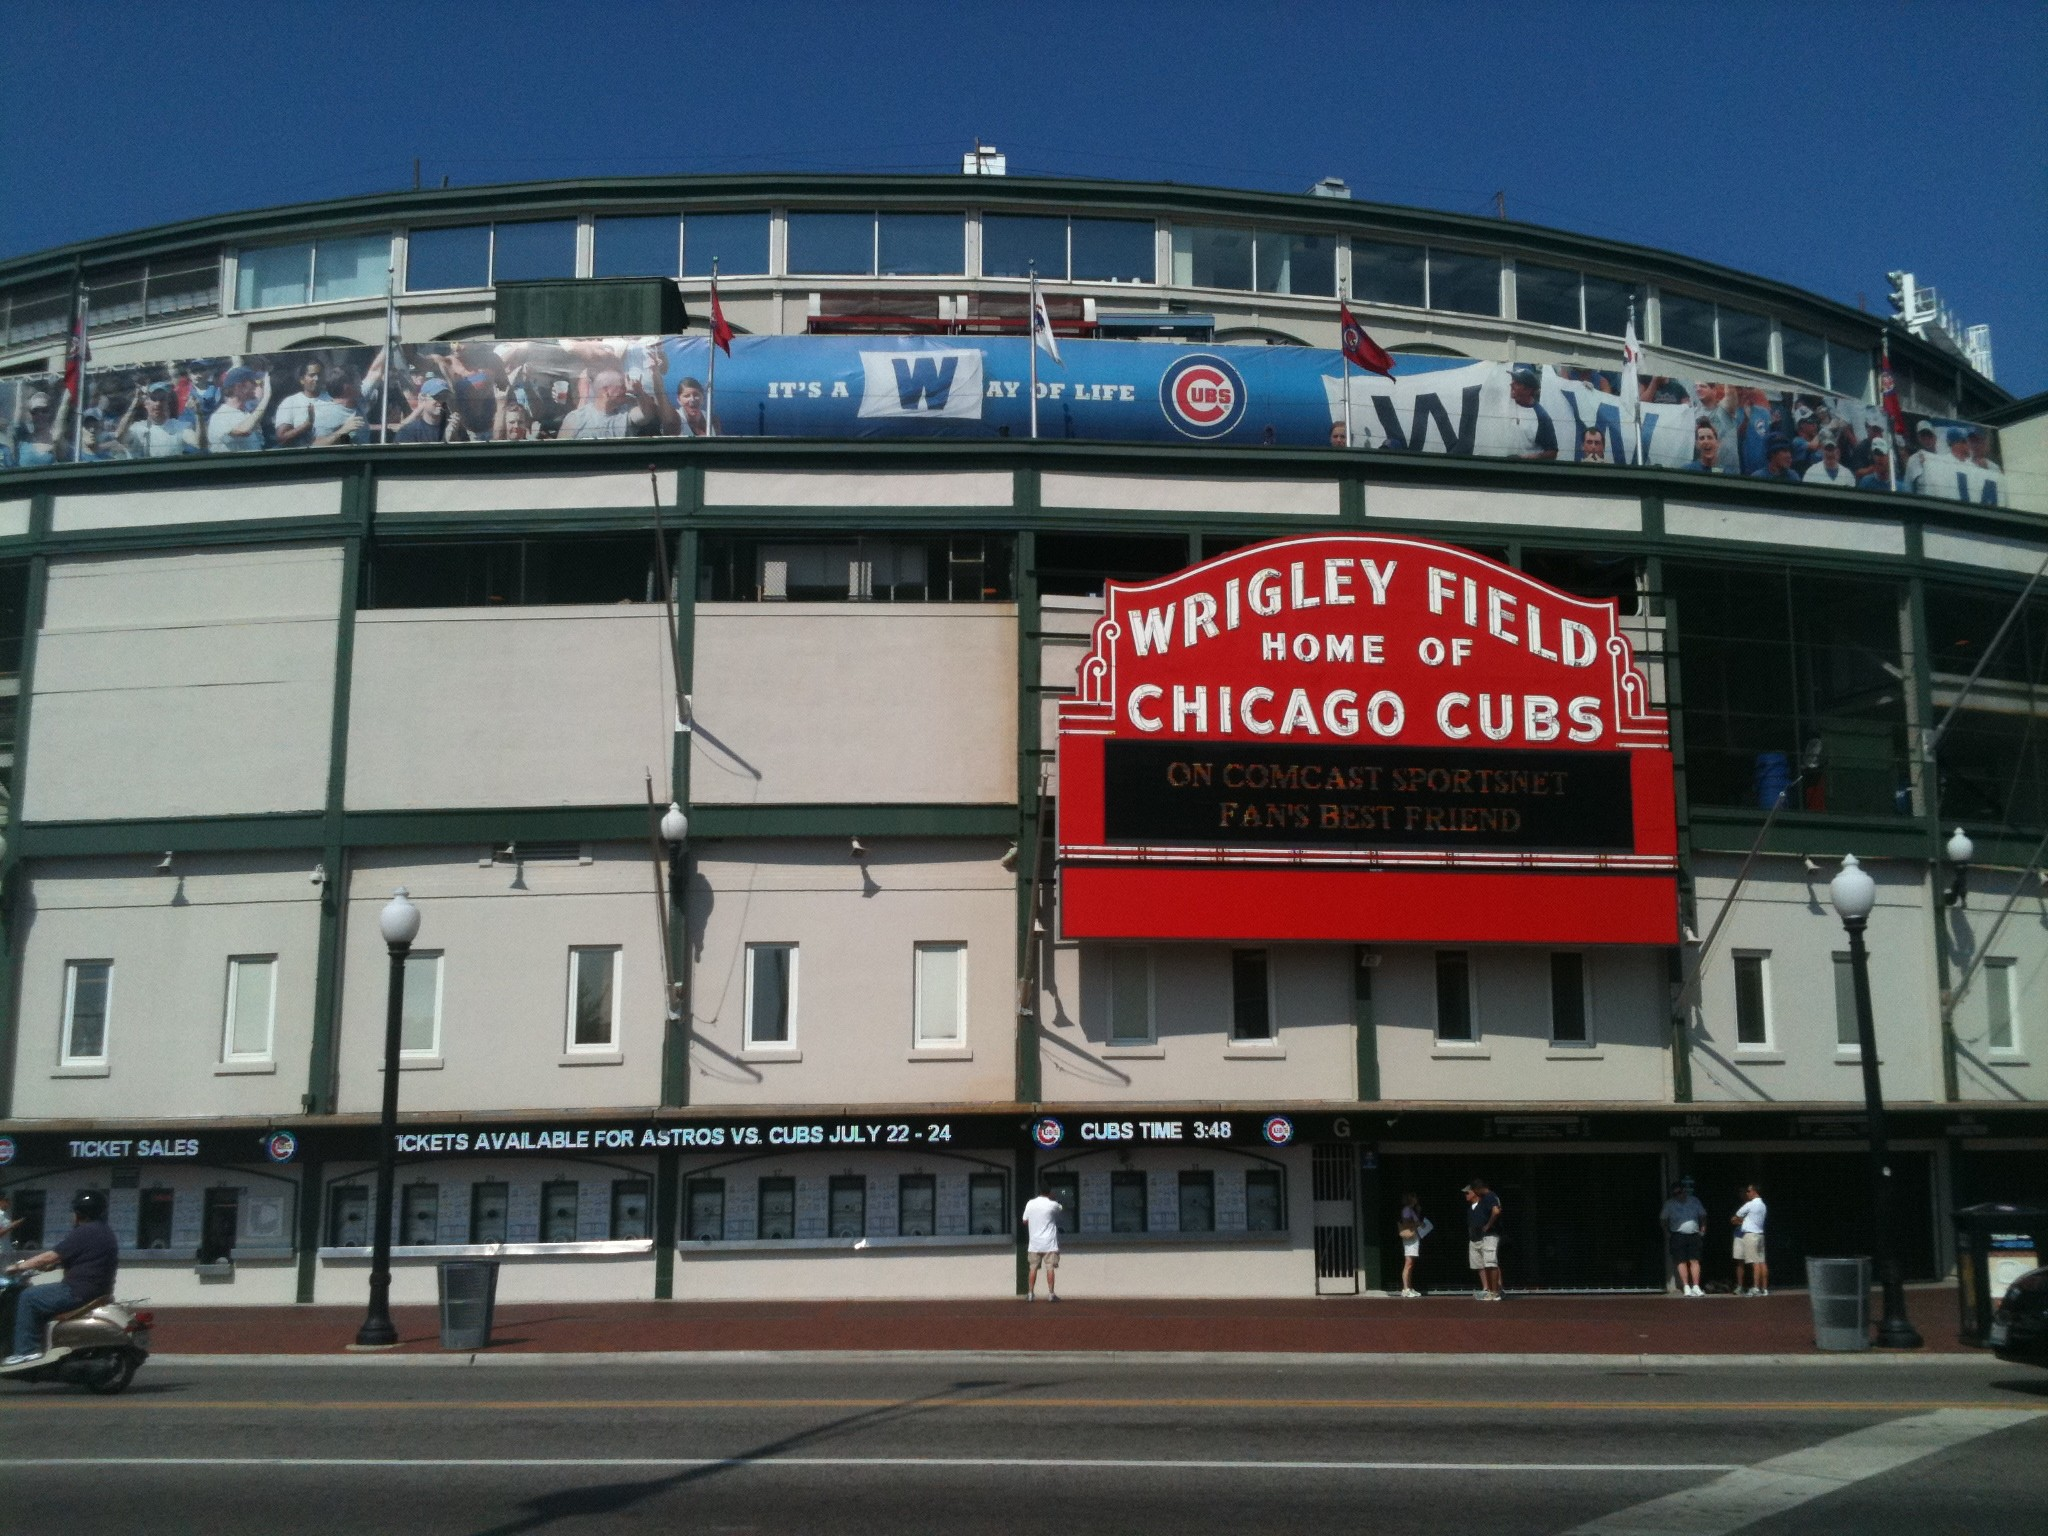 2015 Chicago Cubs Wallpaper Again The Cubs Have Some of